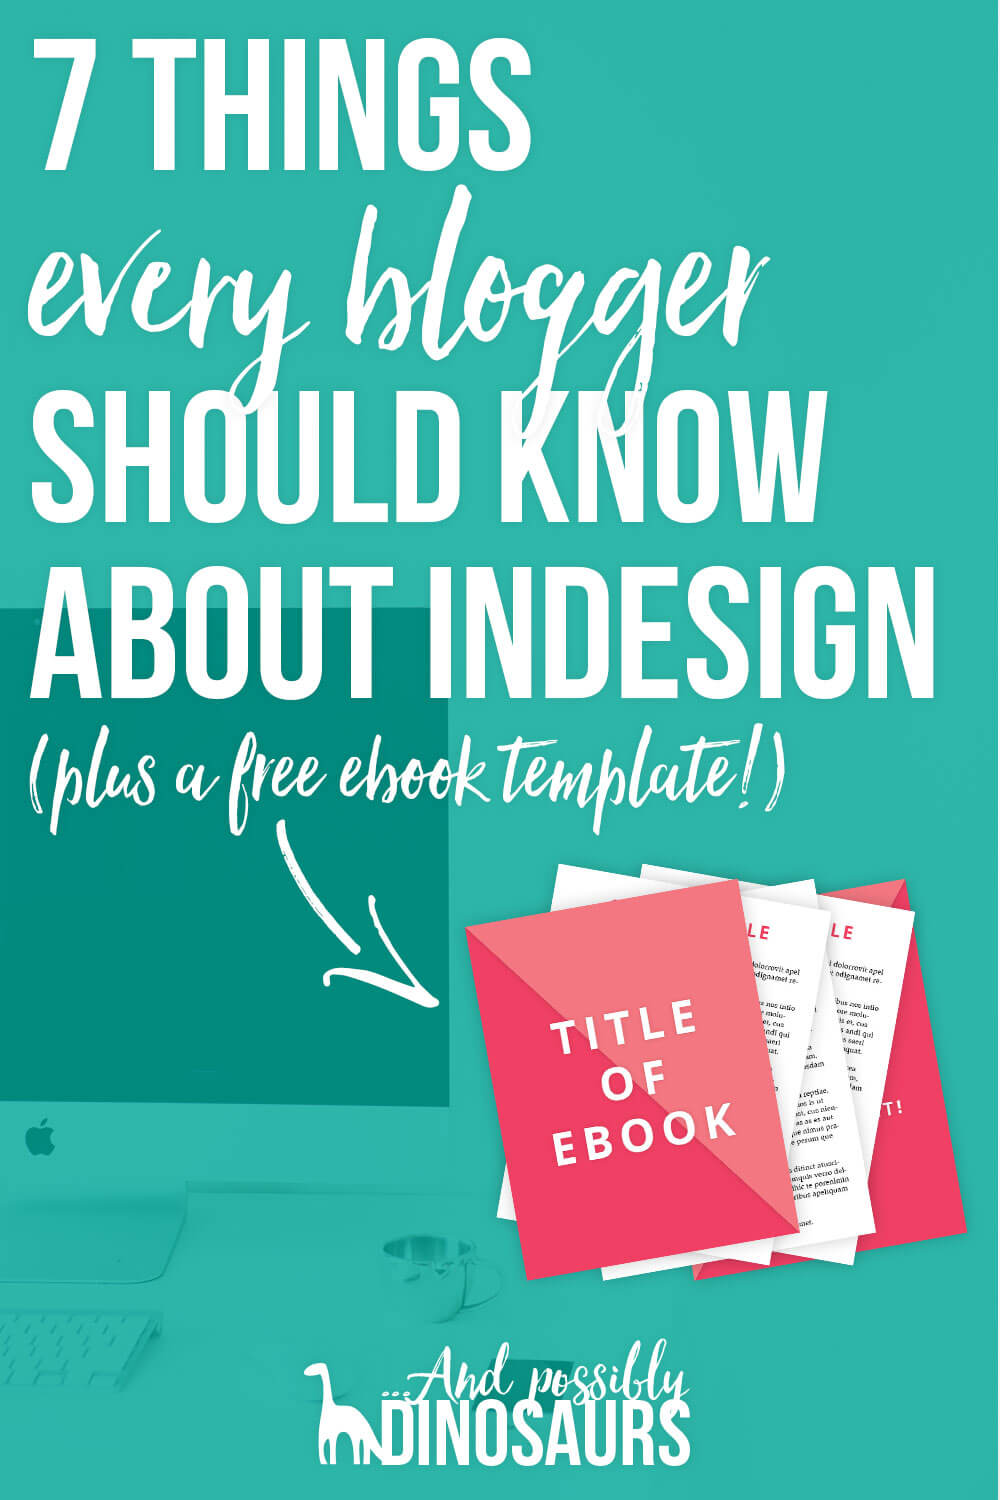 A sister program to Photoshop, Adobe InDesign is an amazing tool for bloggers and business owners. It can be used for a ton of different things: content upgrades, ebooks, image templates, and more! So, why isn't anyone talking about it? And what all do you need to know about InDesign as a blogger or business owner? Click through to find out!